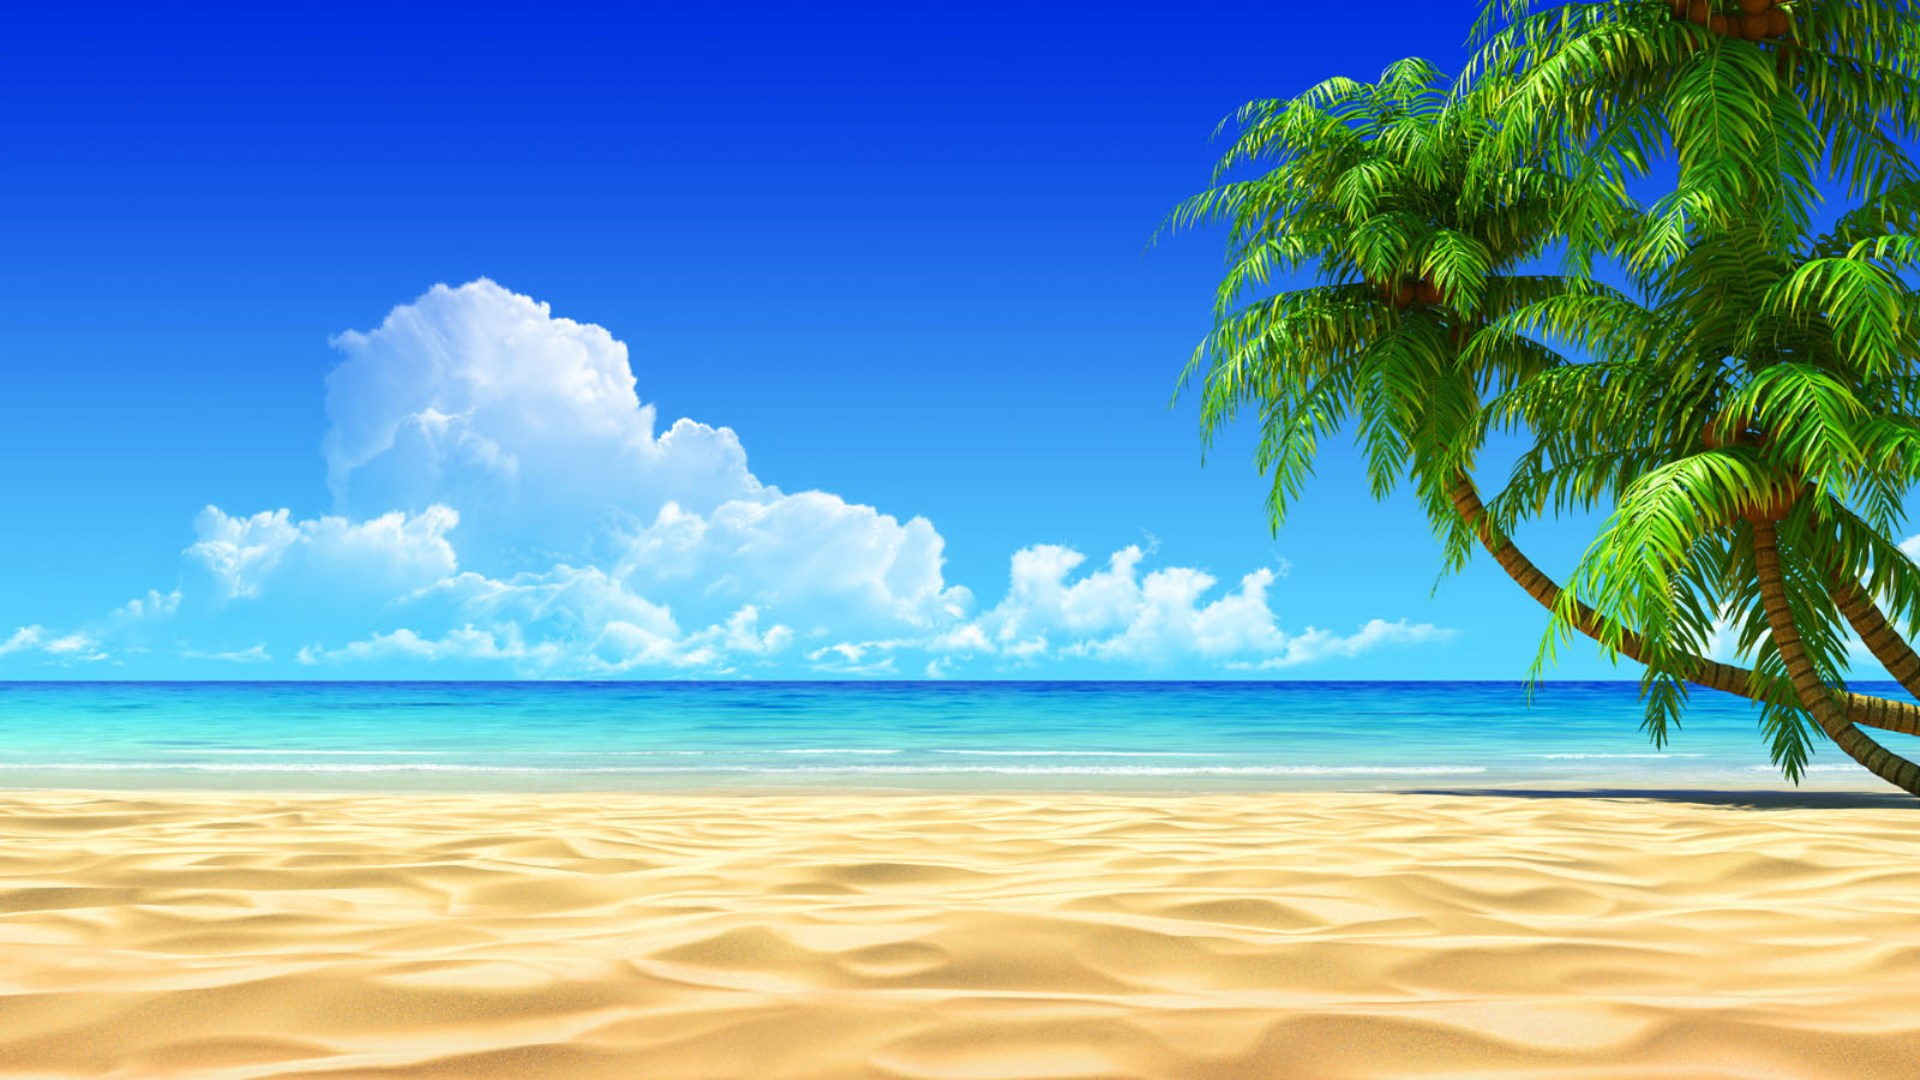 Free Beach Screensavers